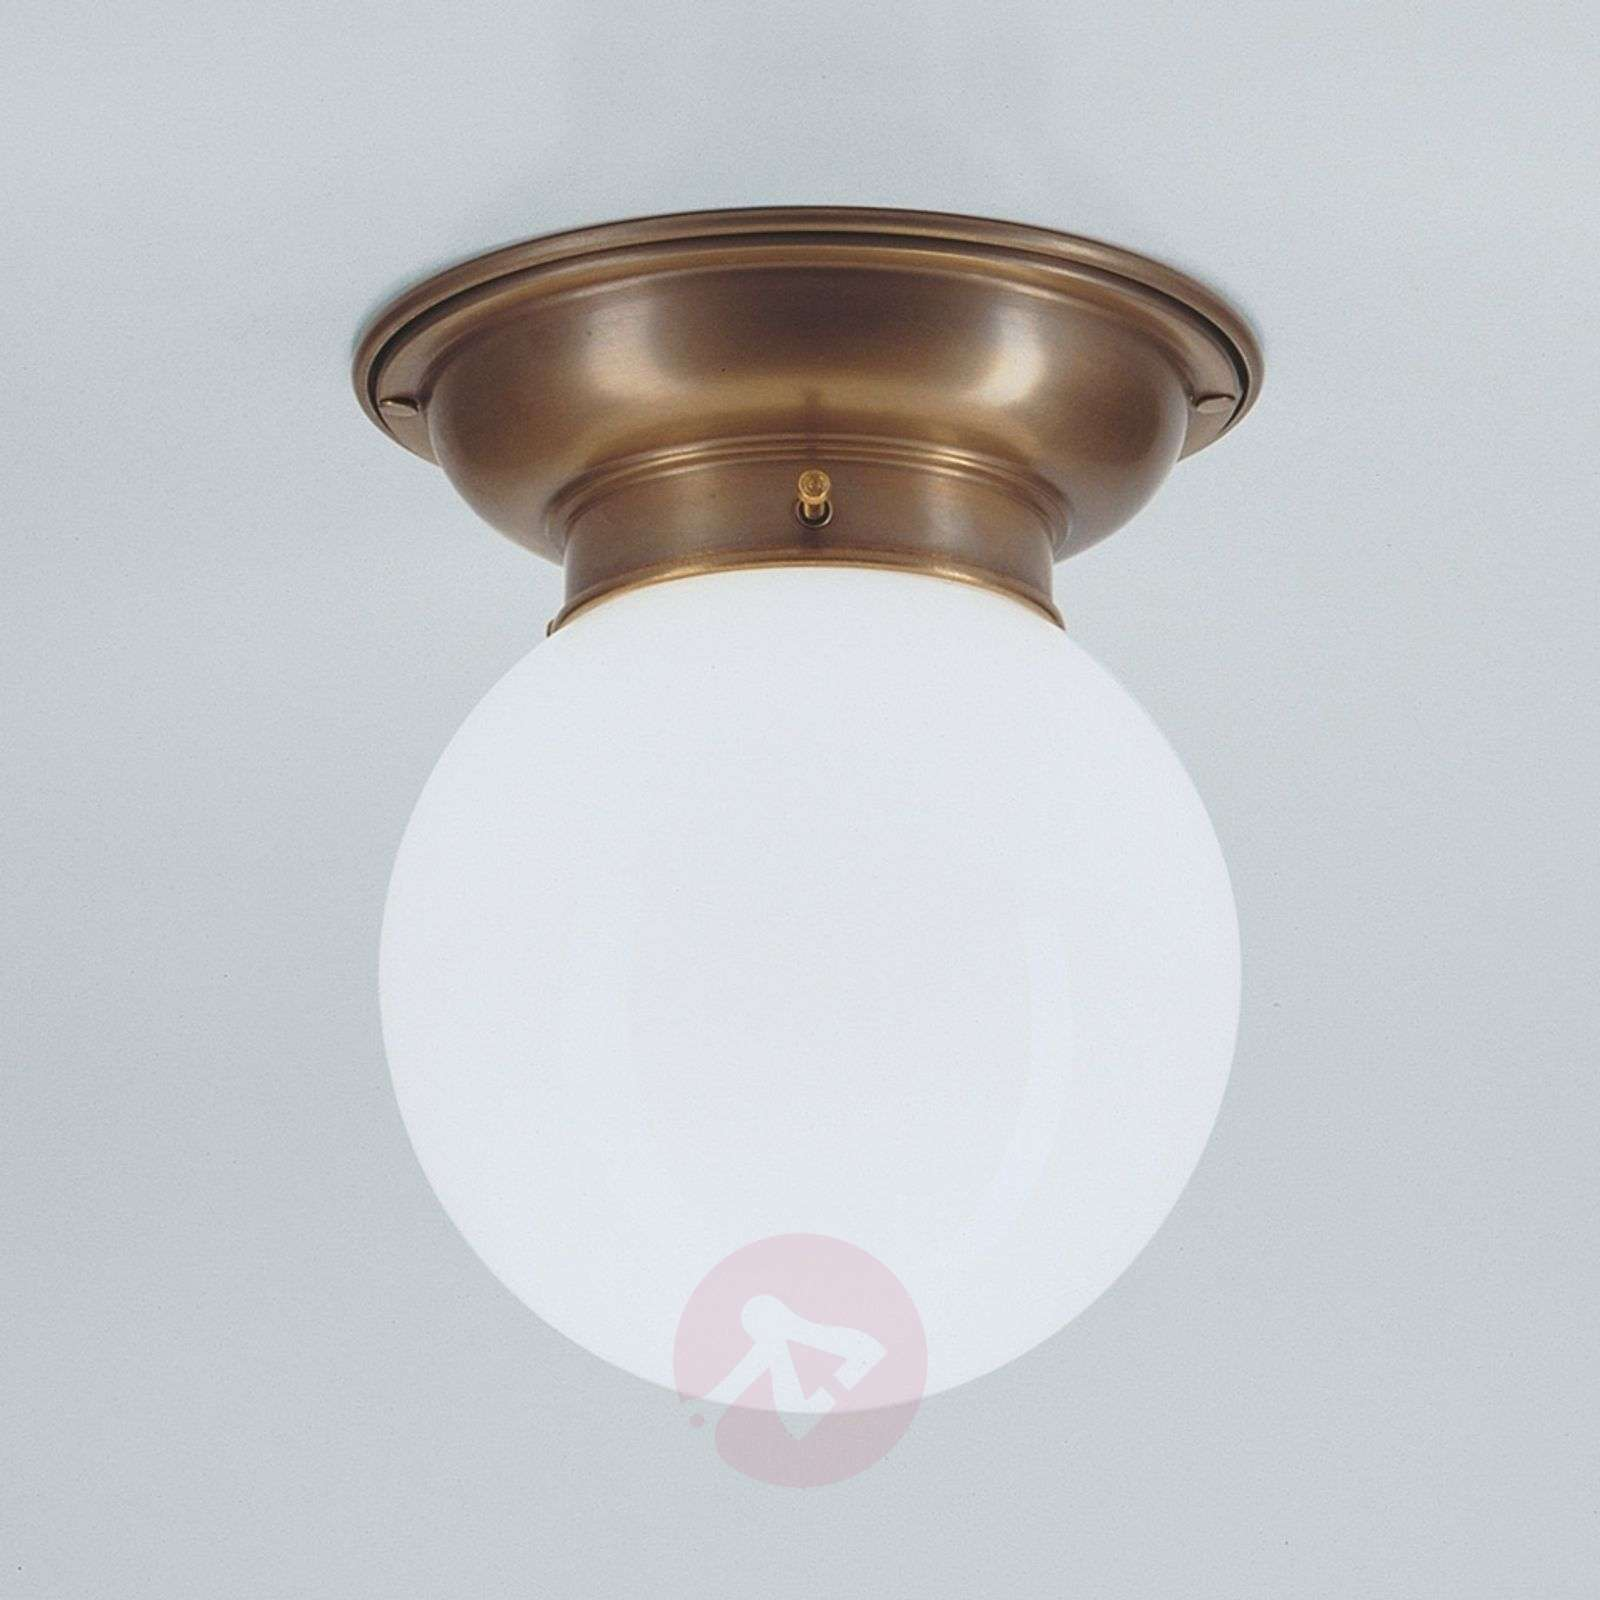 Lampa sufitowa Jim - made in Germany